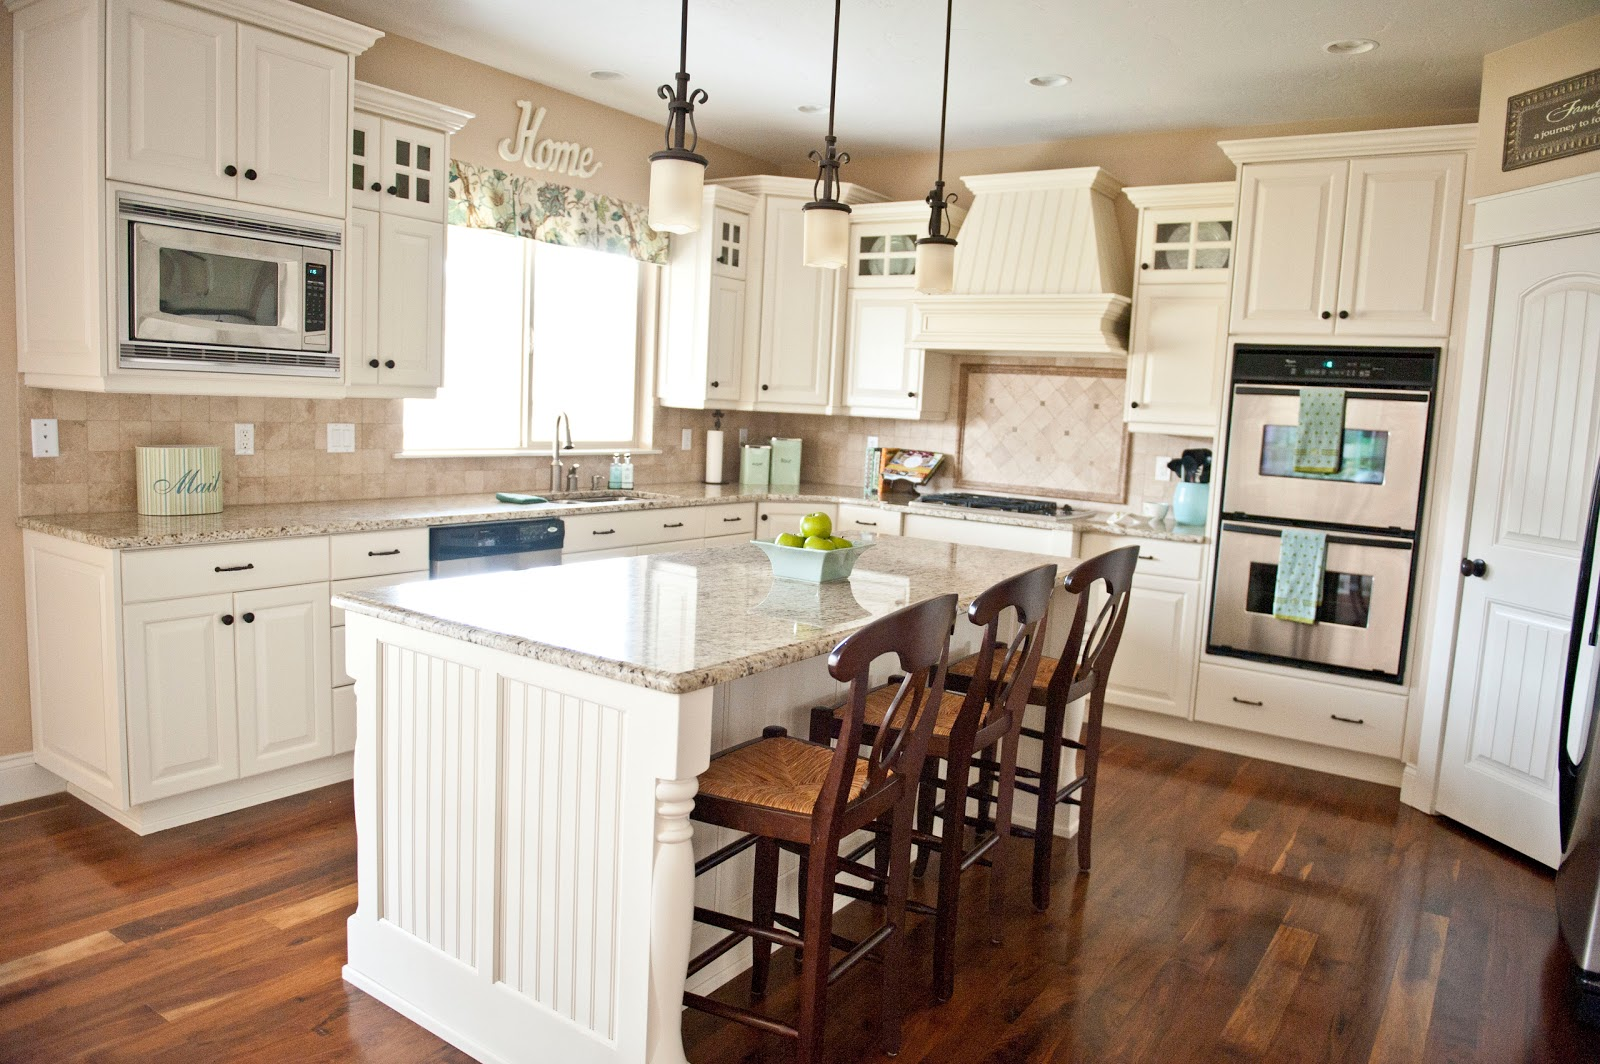 How To Repaint Wooden Kitchen Cabinets